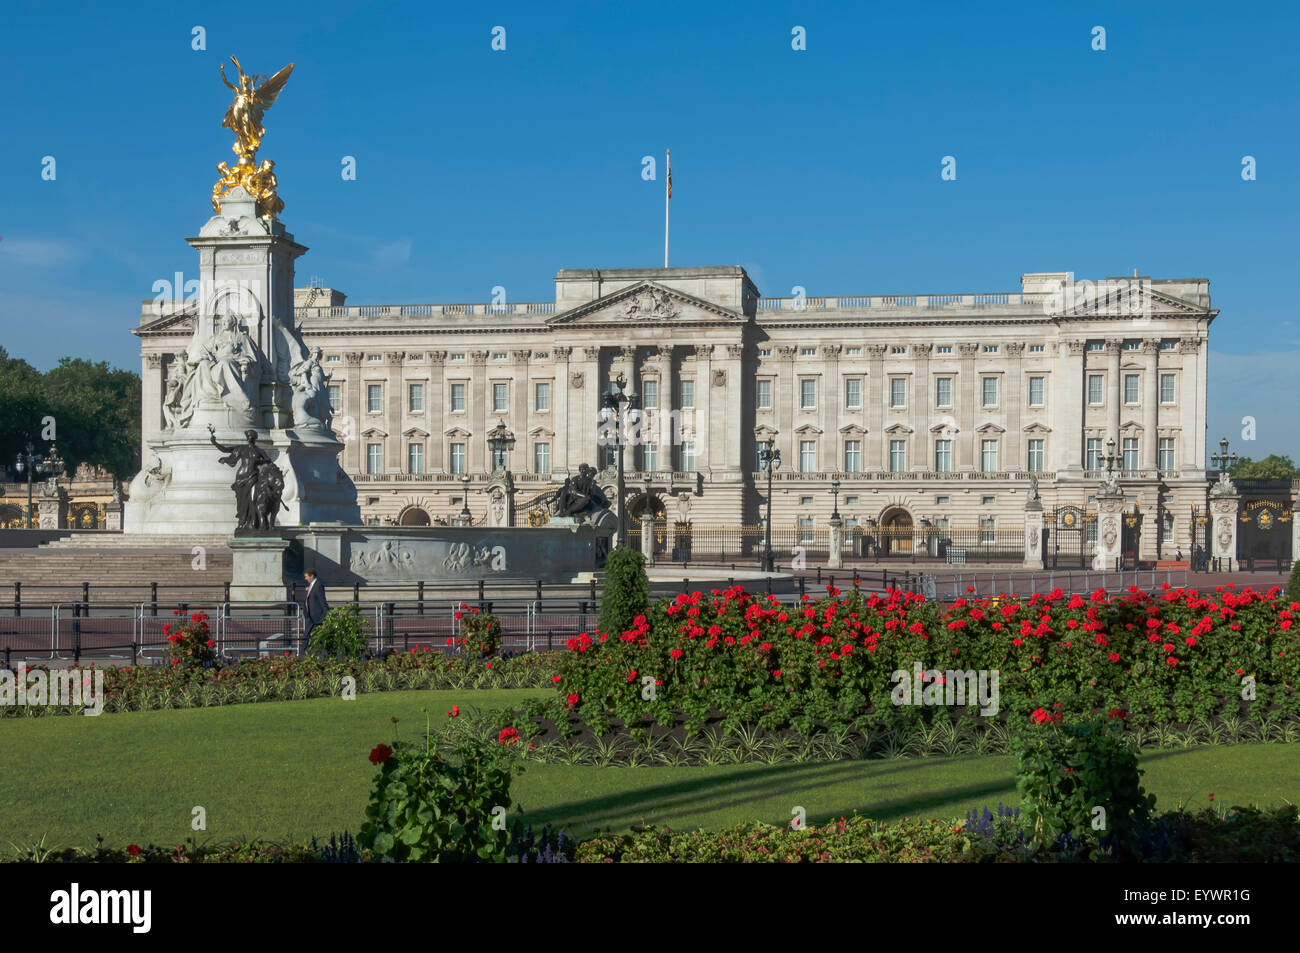 Buckingham Palace and the Queen Victoria Monument, London, England, United Kingdom, Europe - Stock Image